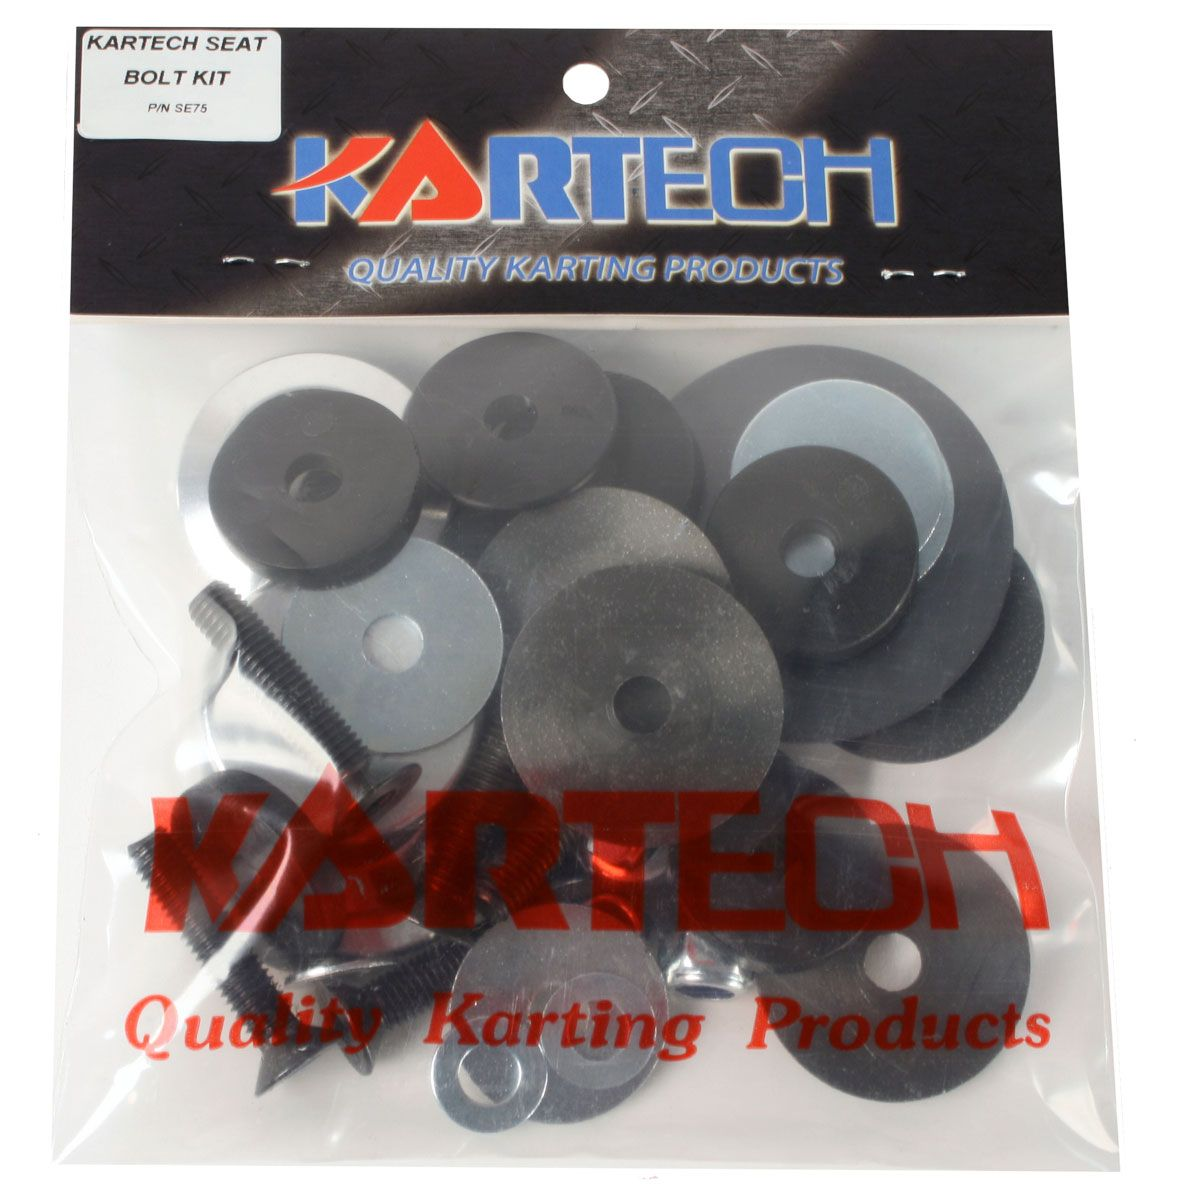 Kartech Seat Bolt Kit